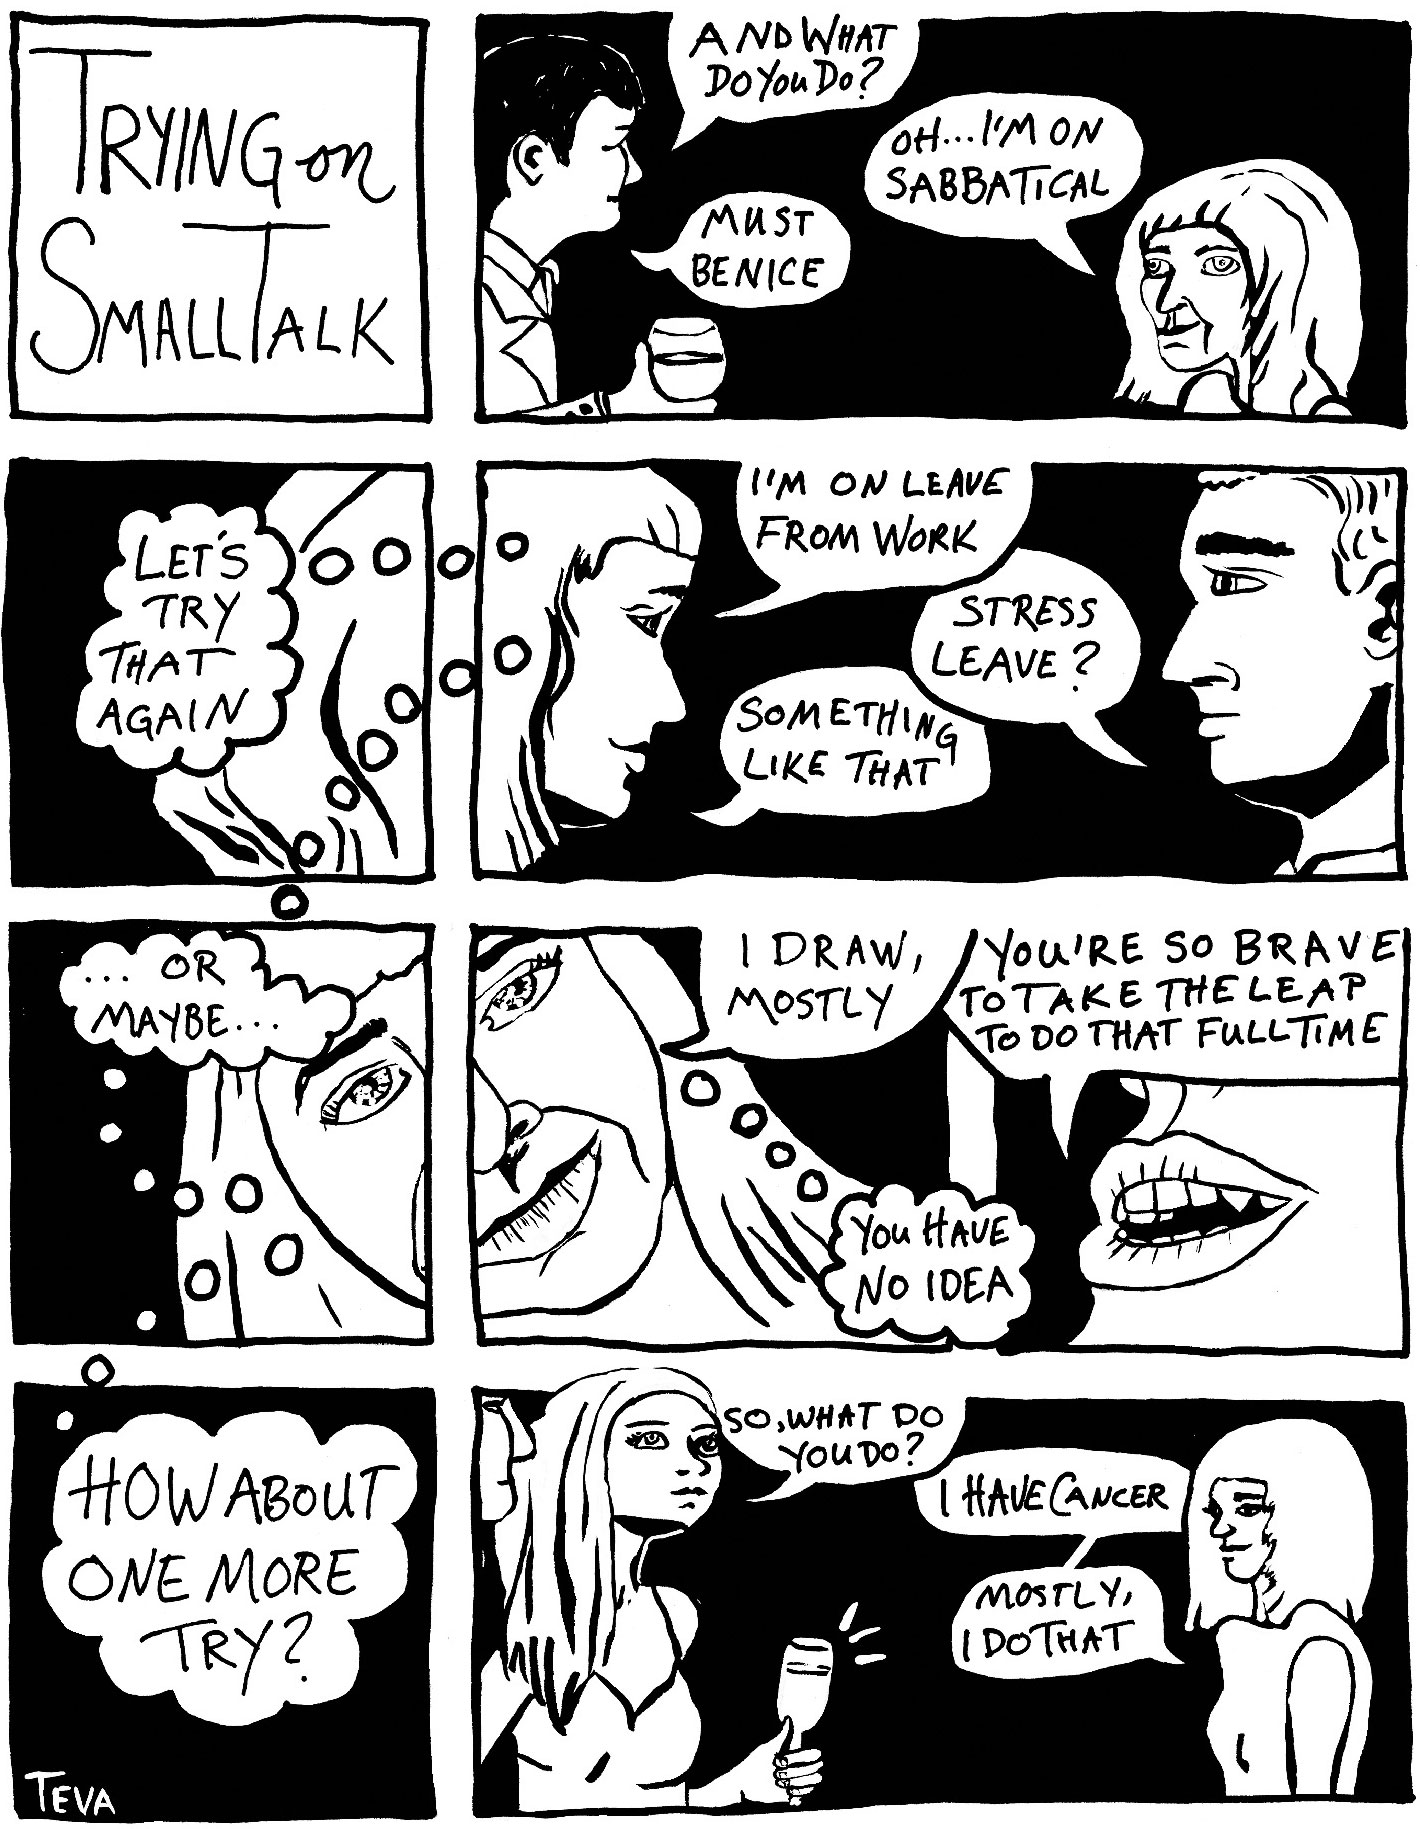 Image of Teva's comic on Trying on Small Talk